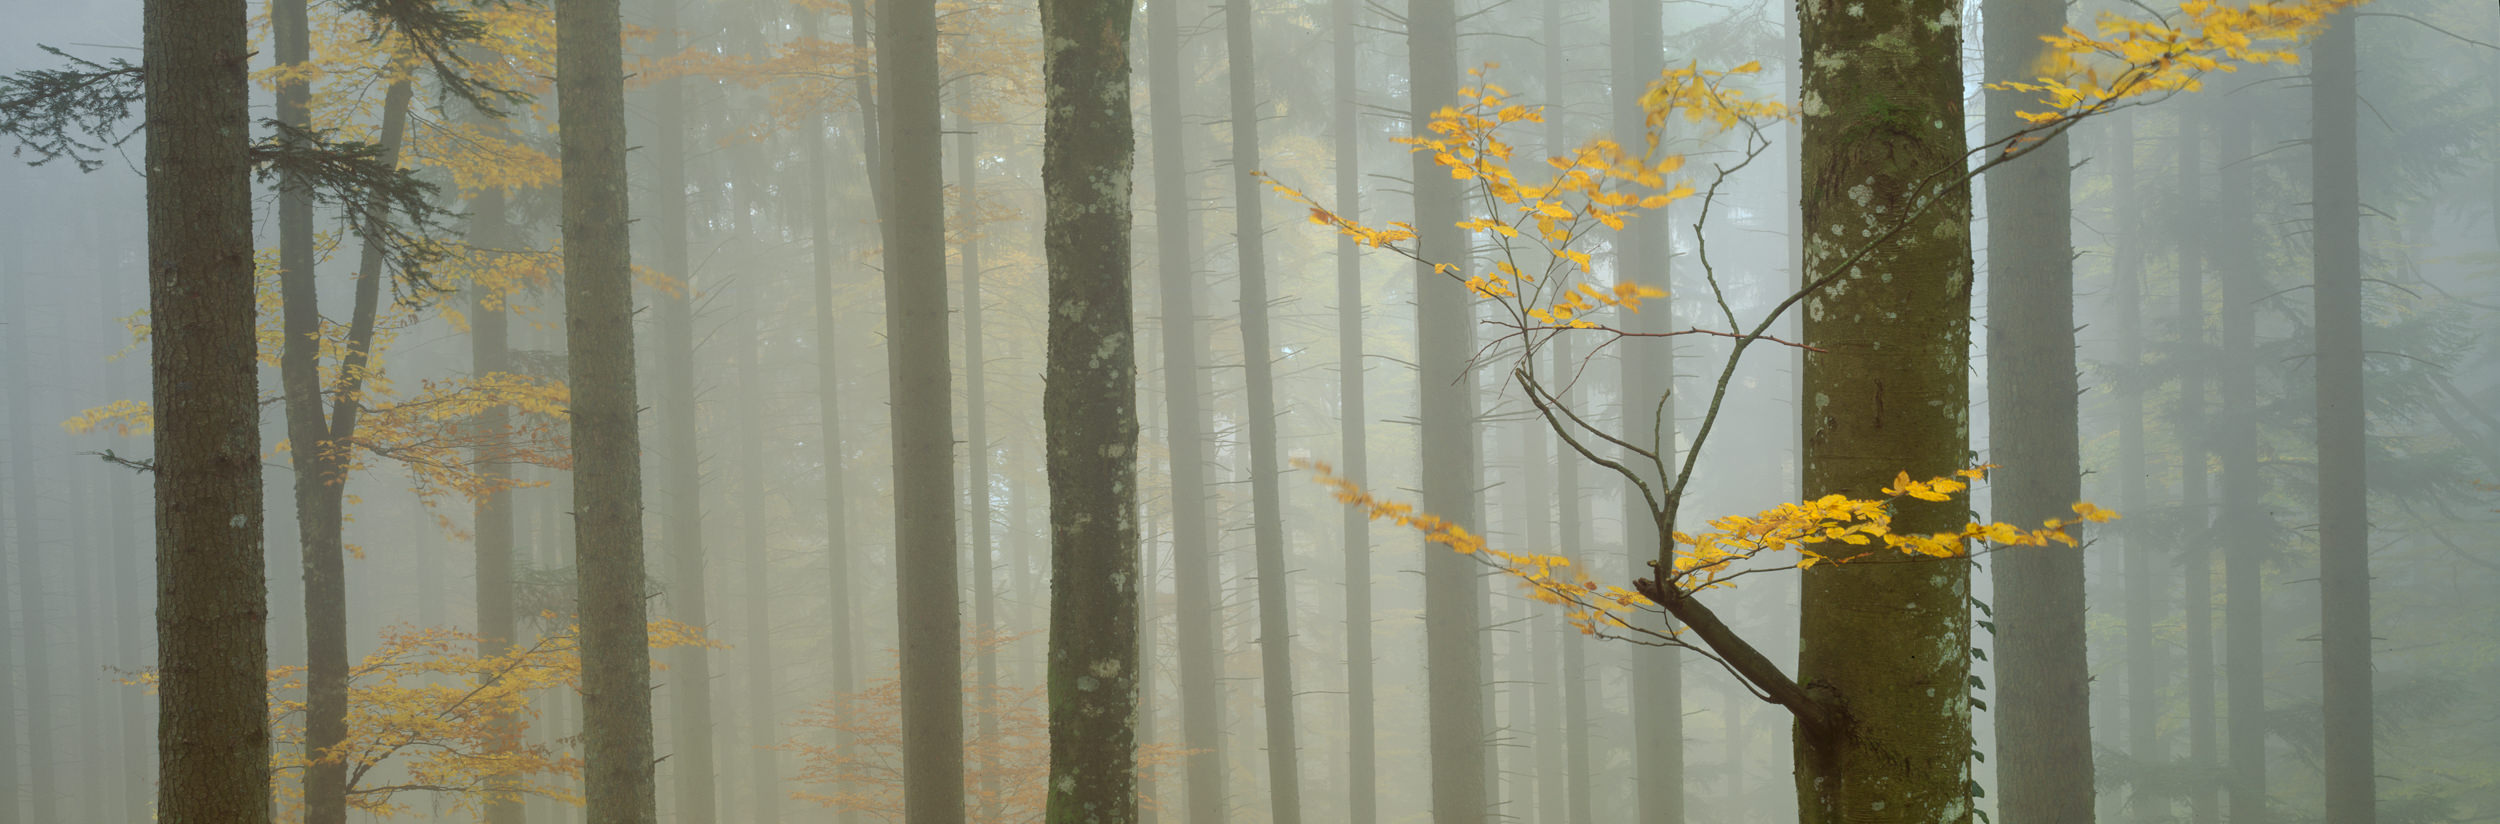 Isolation of one particular element of the forest and visual rythm given by repetition of vertical lines, Switzerland, Rafael Rojas.jpg